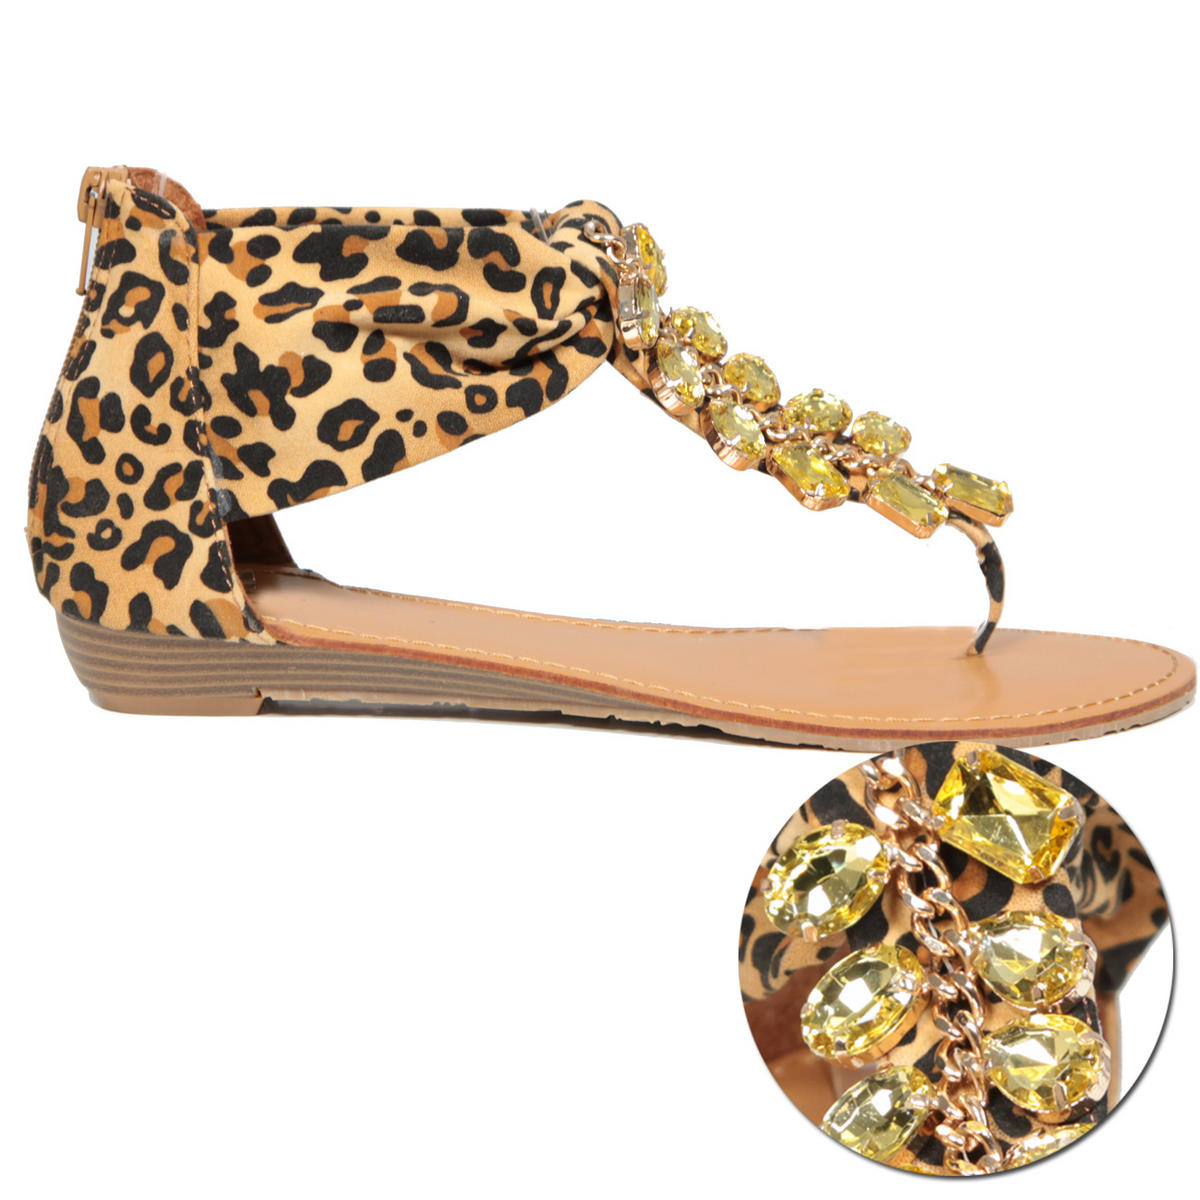 Leopard Print Jewel Sandal Shoe Preview